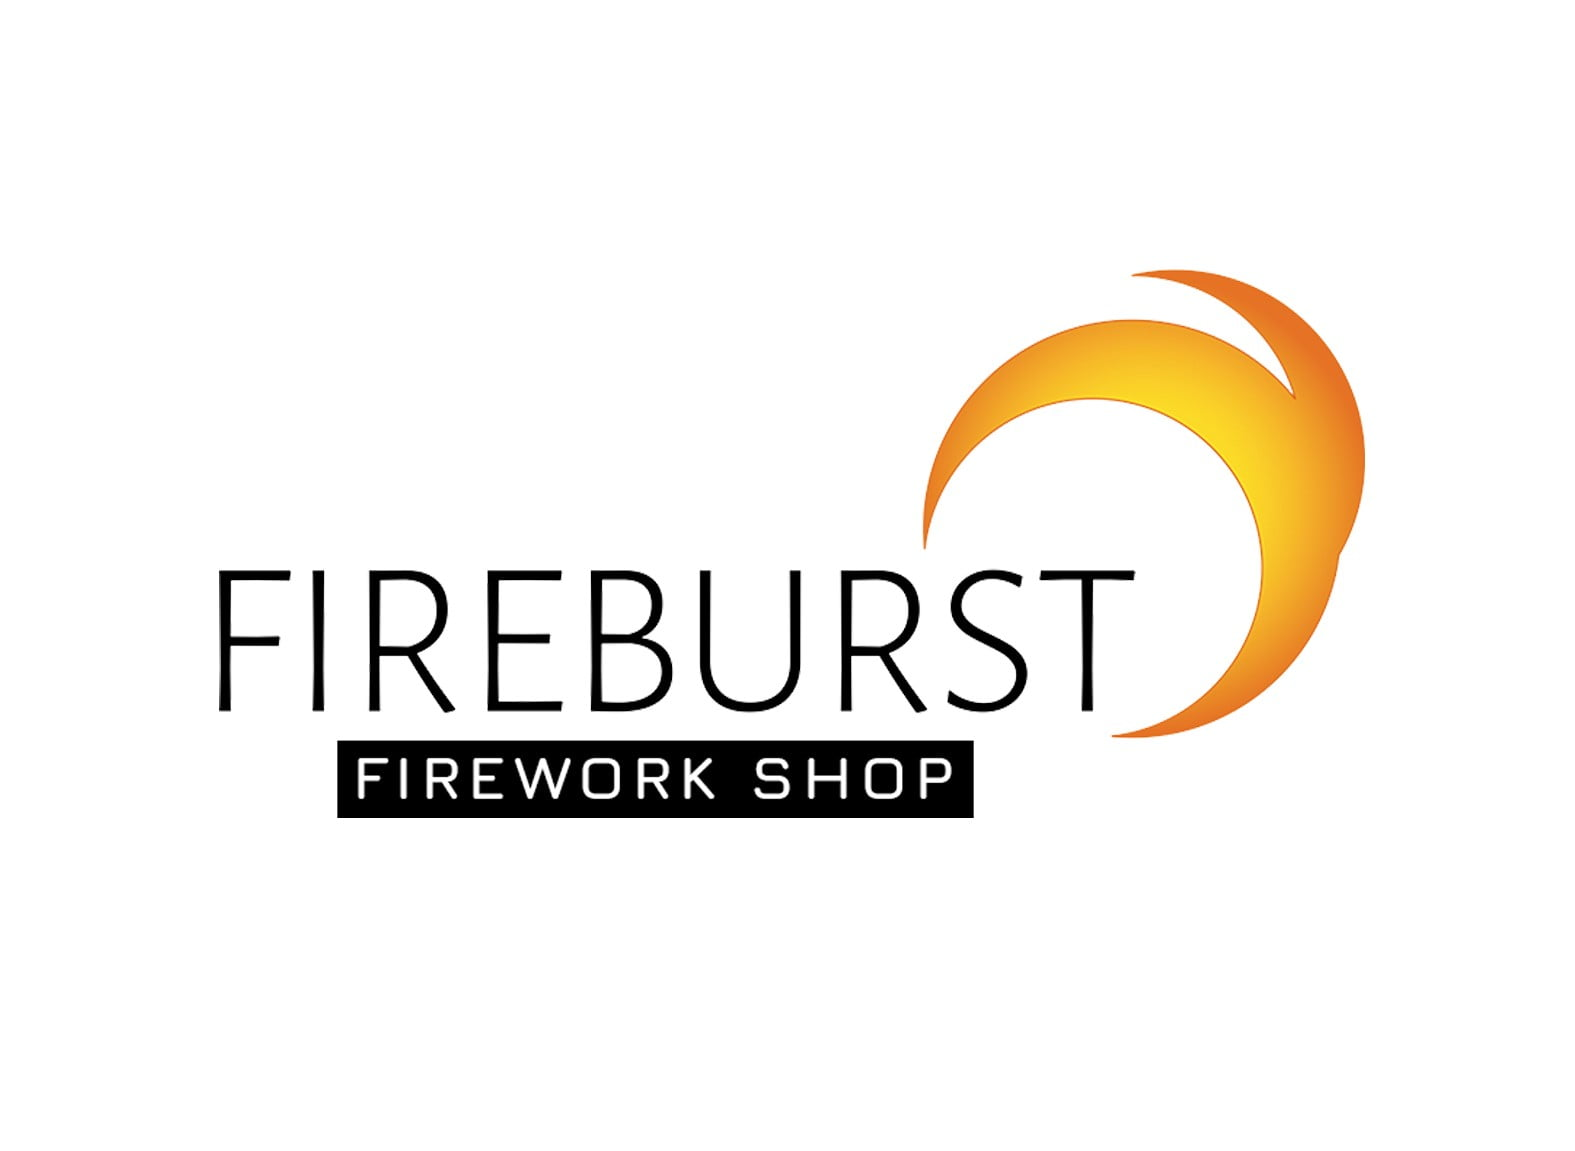 Buy fireworks in Aylesbury, Bucks